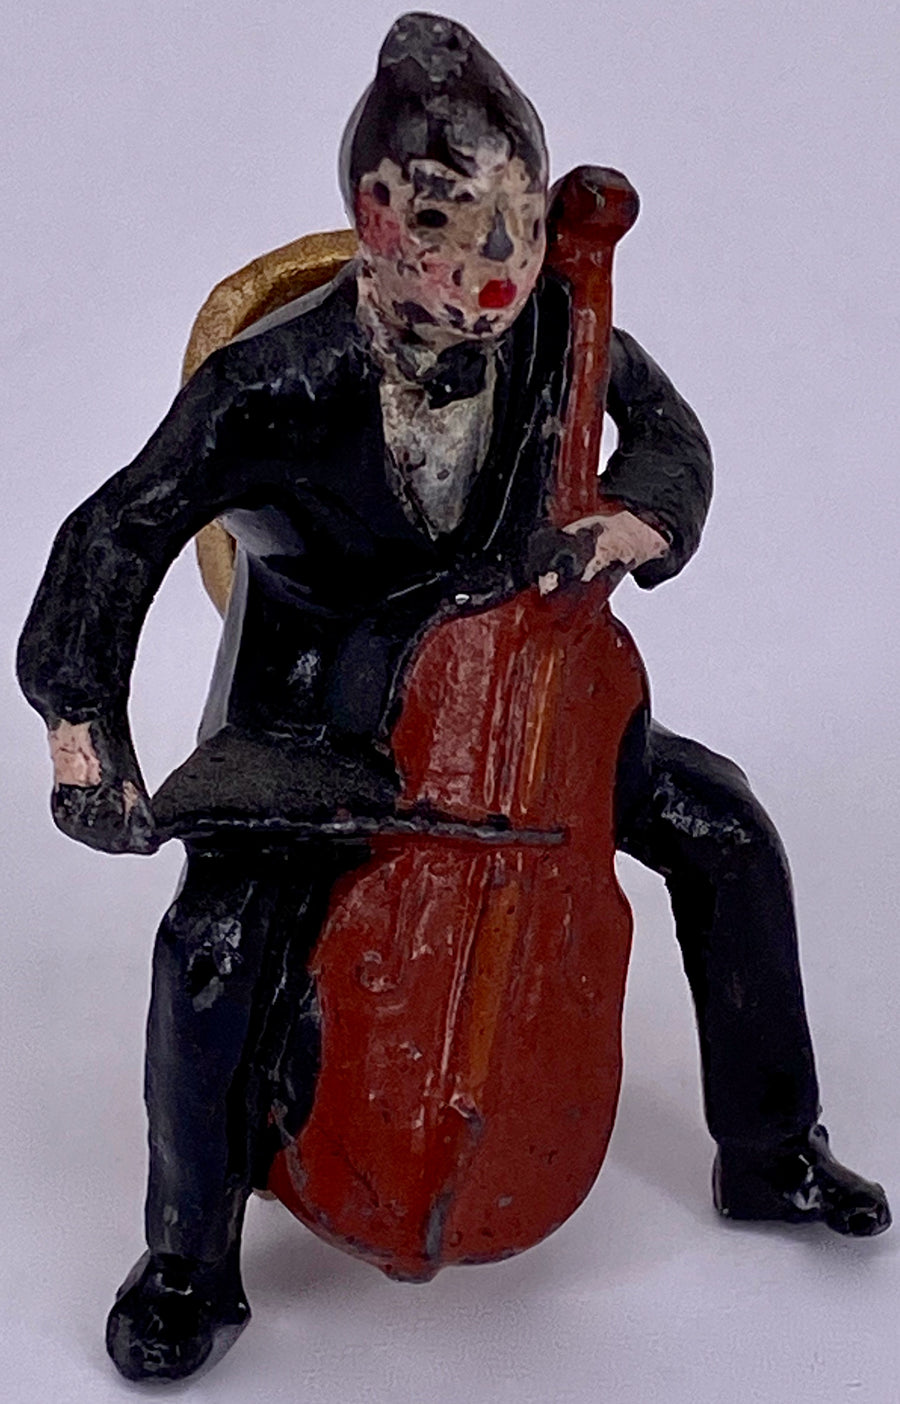 Charbens cello player and chair from Jacks Band